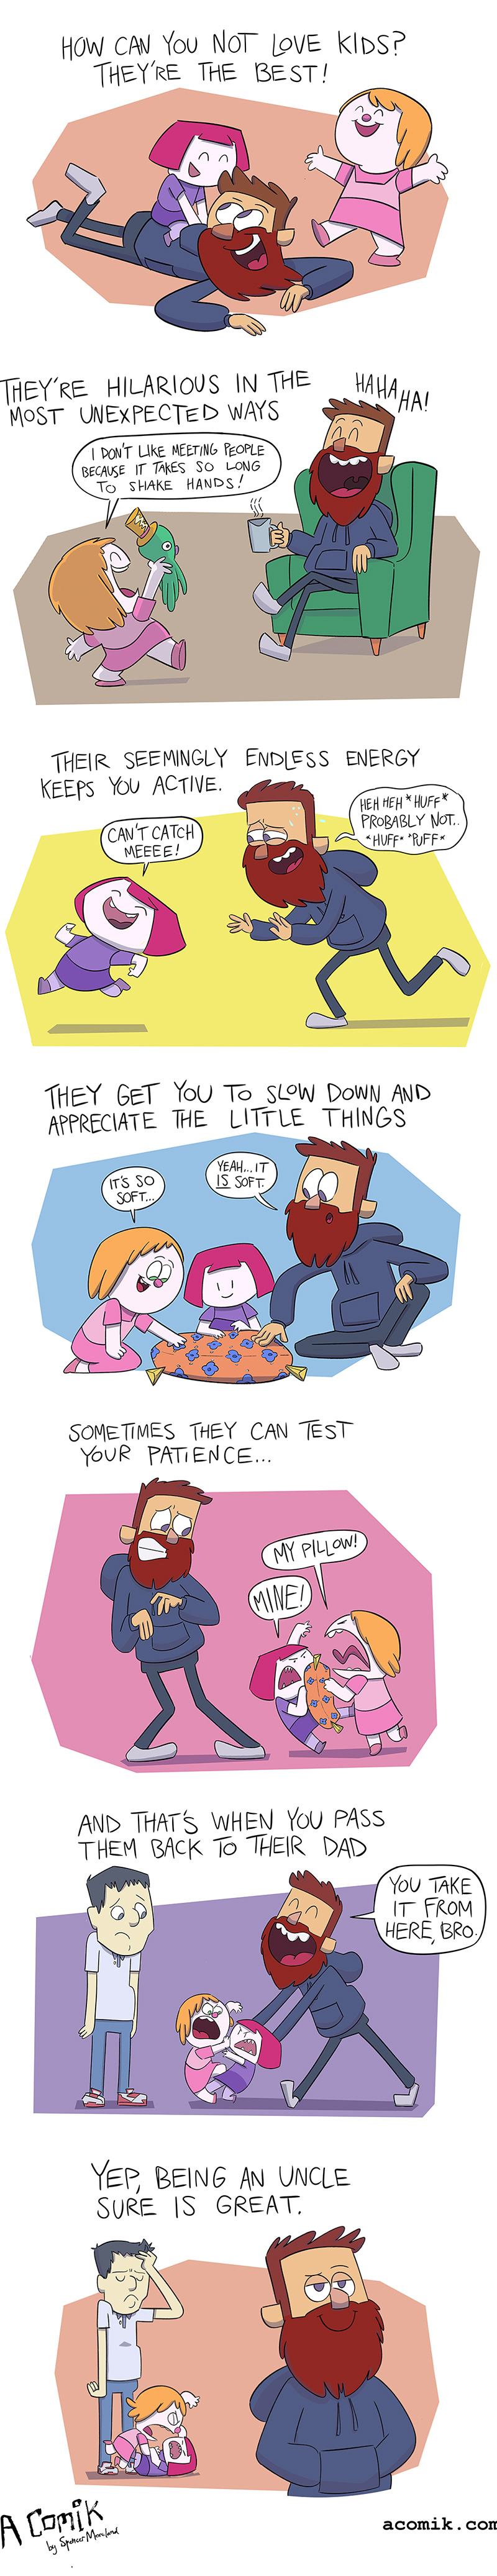 funny parenting comic about kids